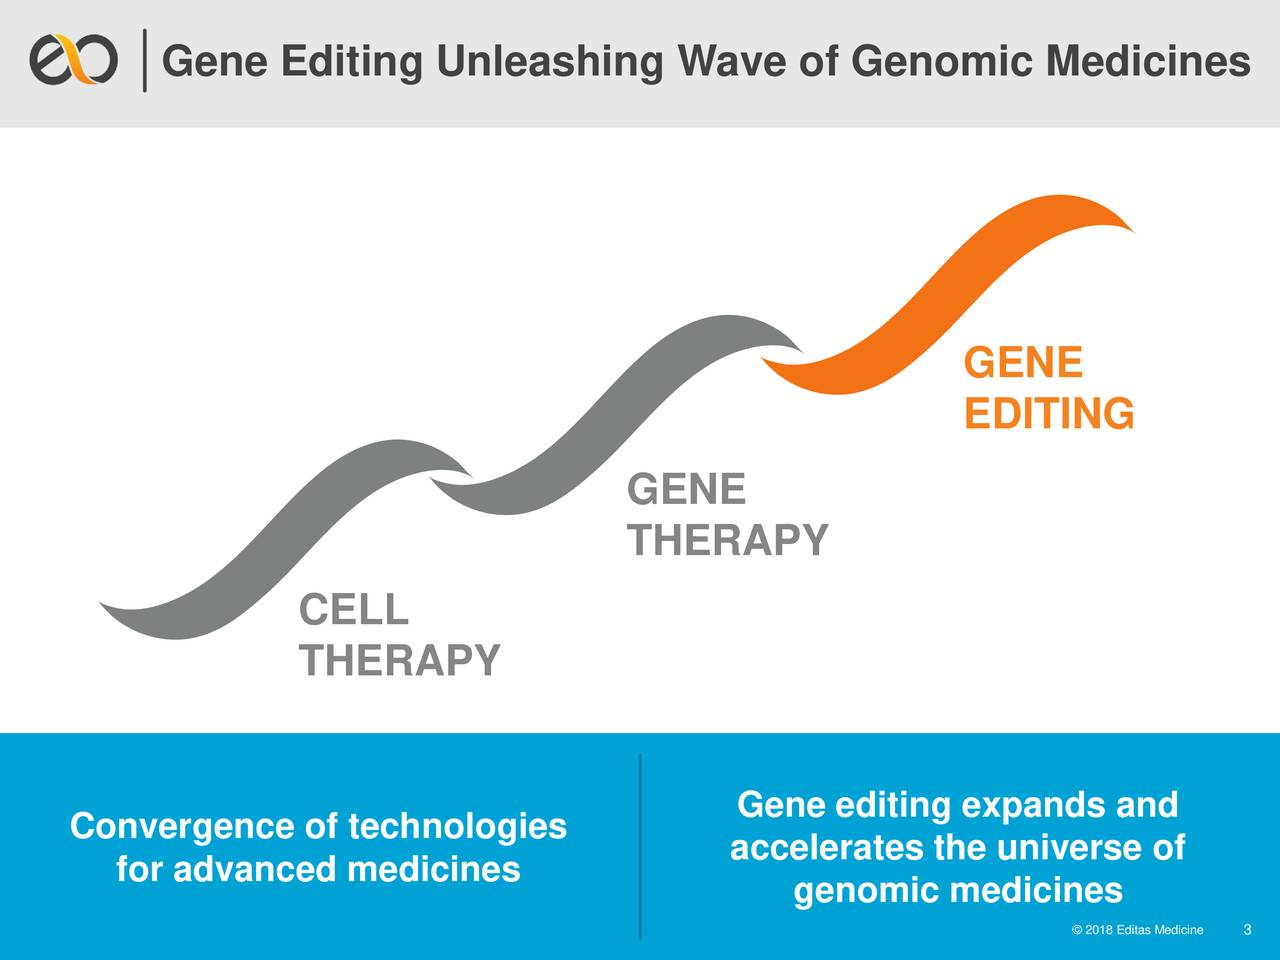 GENE EDITING GENE THERAPY CELL THERAPY Gene editing expands and Convergence of technologies accelerates the universe of for advanced medicines genomic medicines ©08EdsMdceen 3